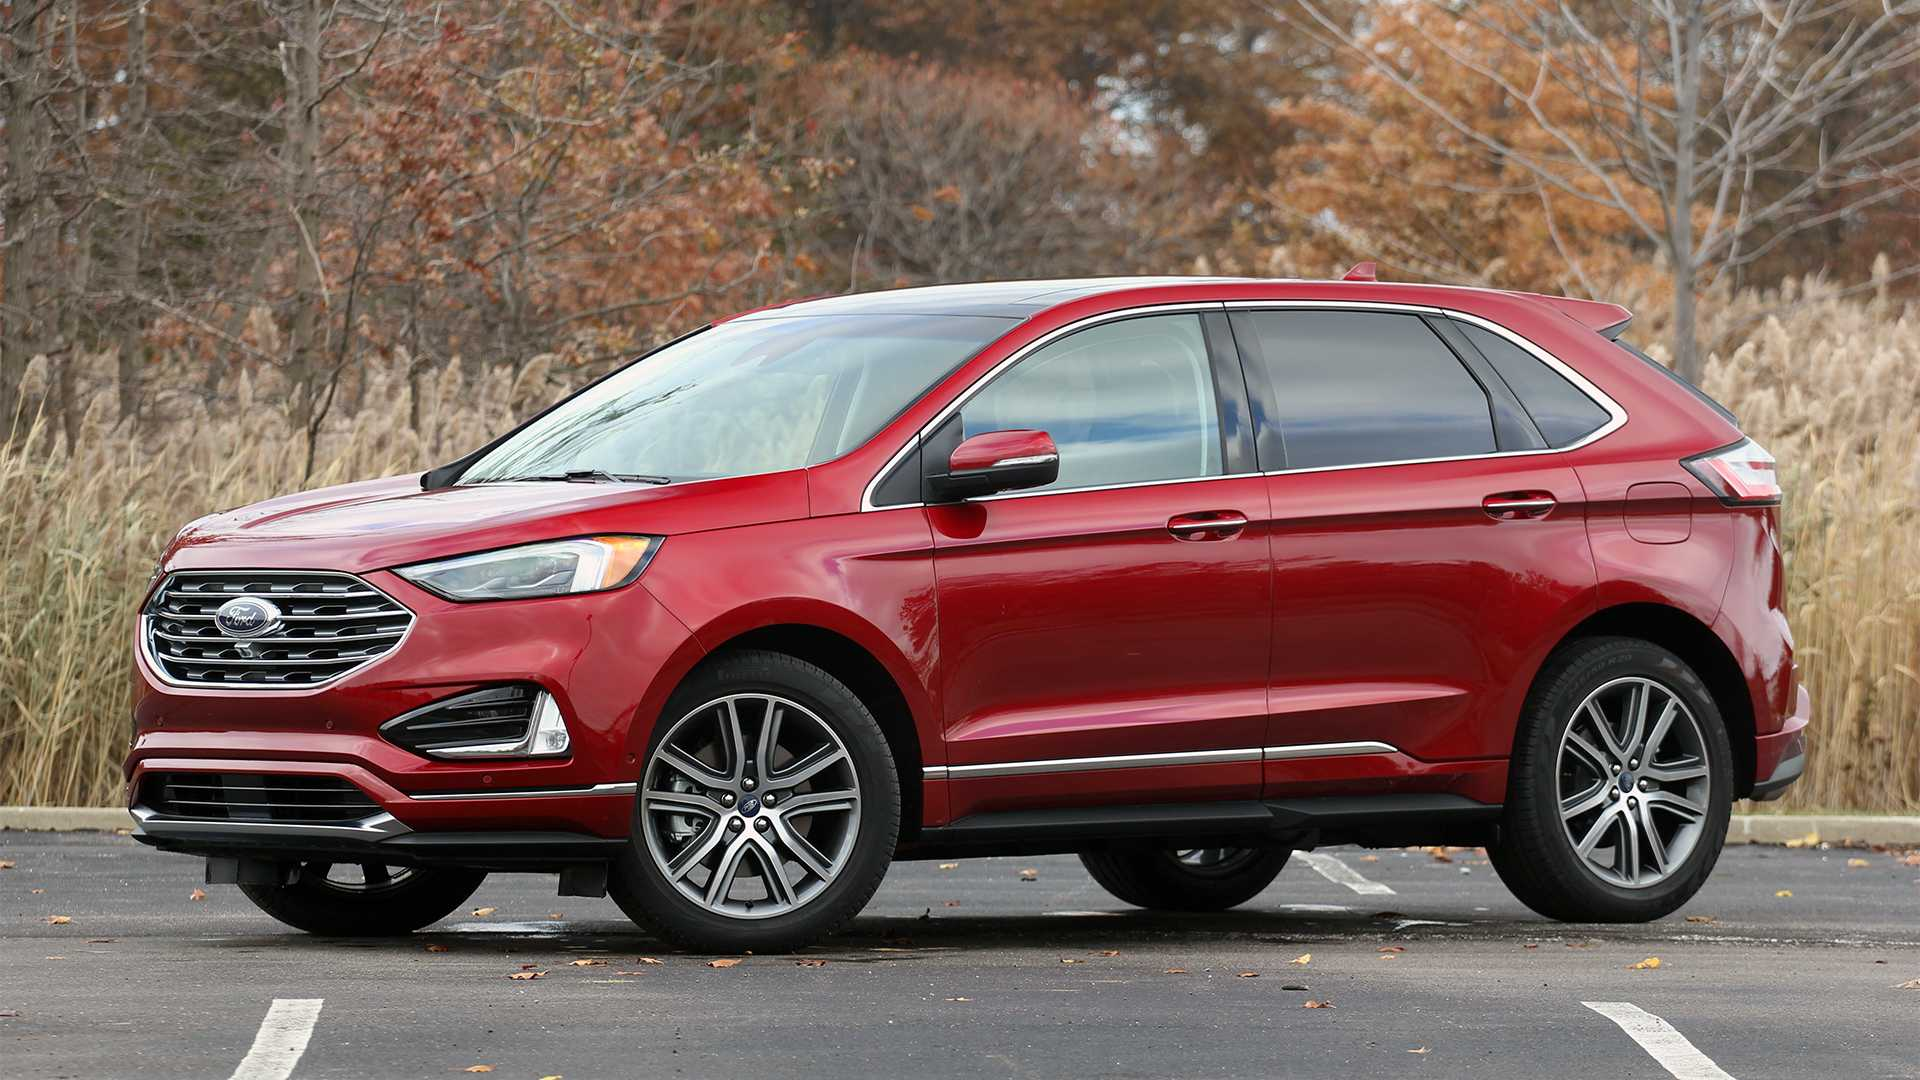 2020 Ford Edge Front Three-quarter View